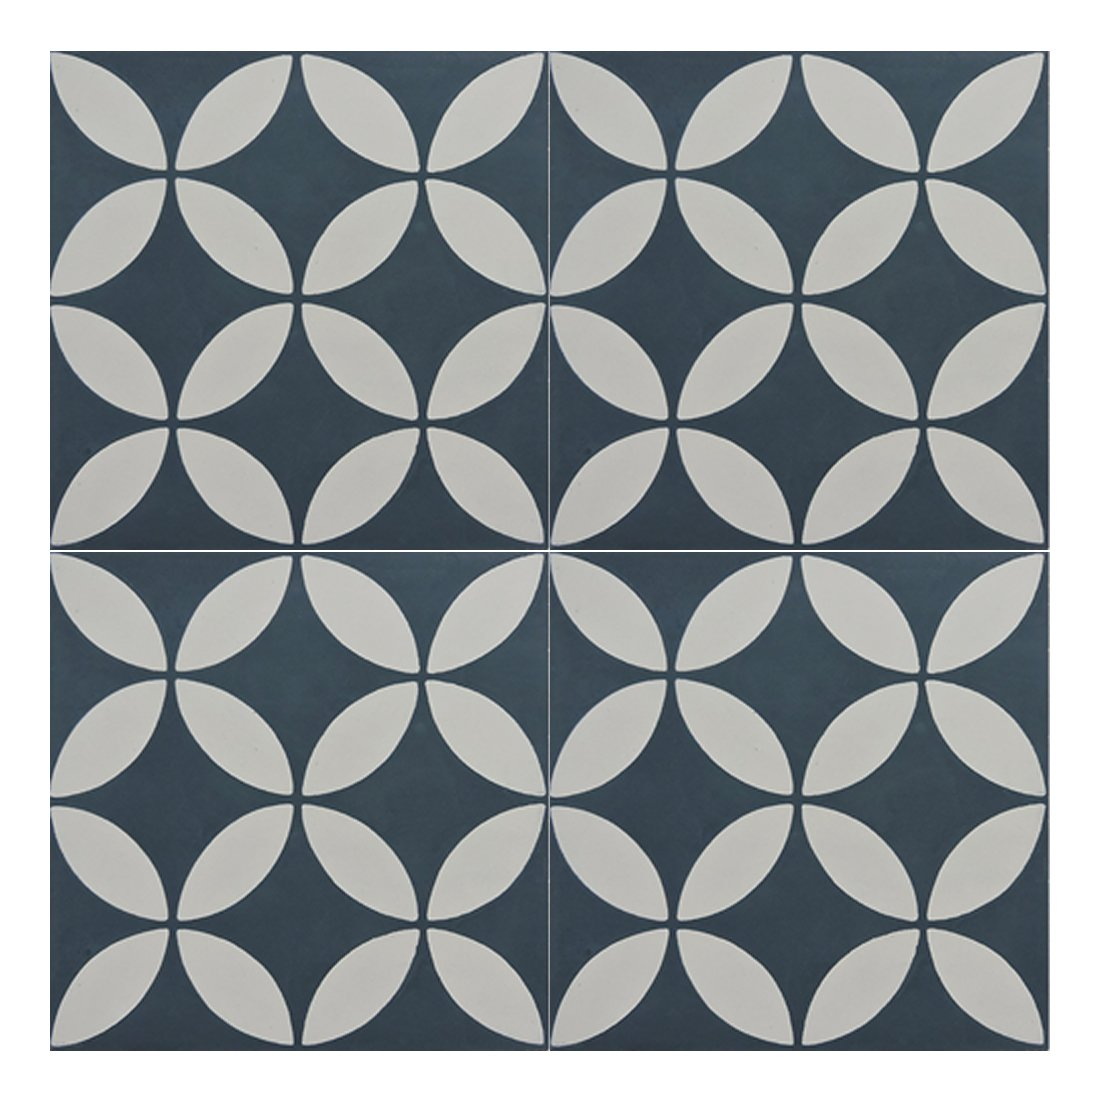 Moroccan Mosaic & Tile House CTP07-11 Amlo 8''x8'' Handmade Cement Tile in Navy Blue and Gray (Pack of 12), Navy BlueWhite by Moroccan Mosaic & Tile House